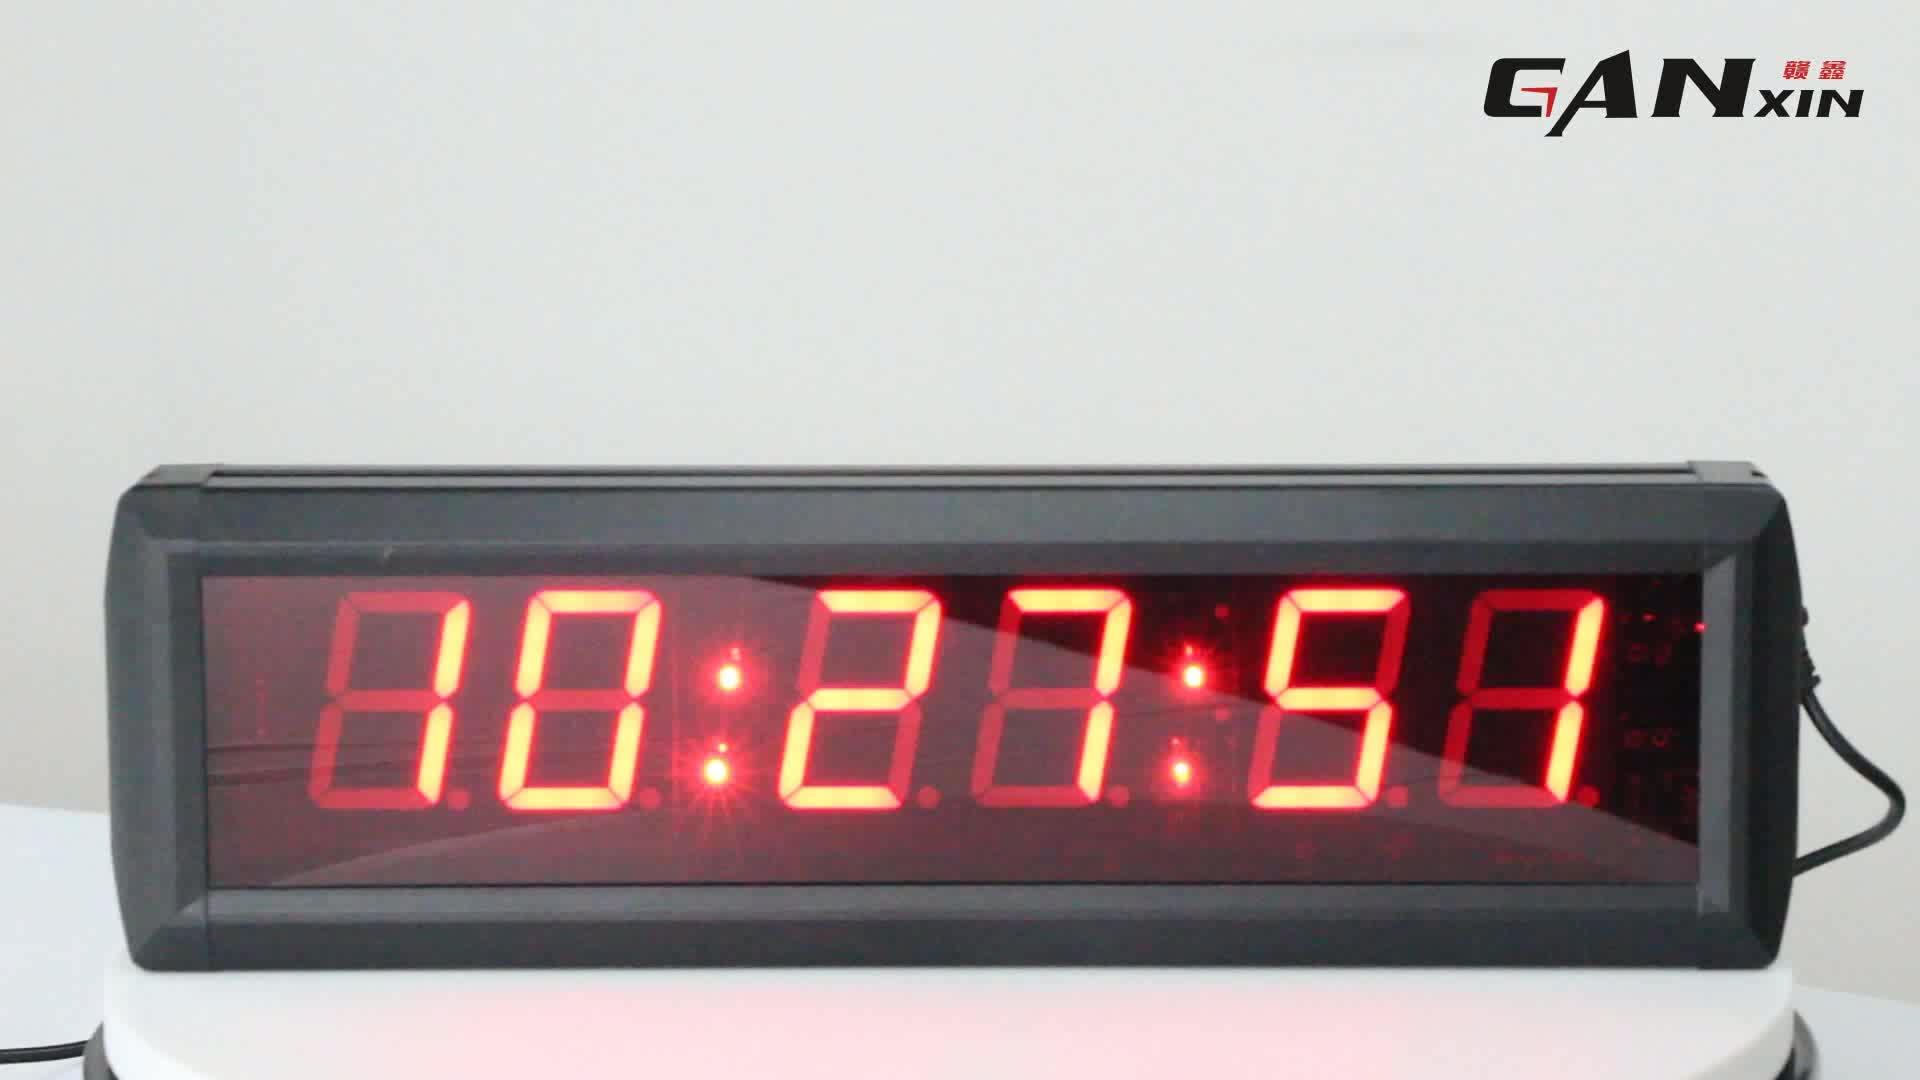 Small led screen number display master slave clock with digital calendar indoor for exercise timing